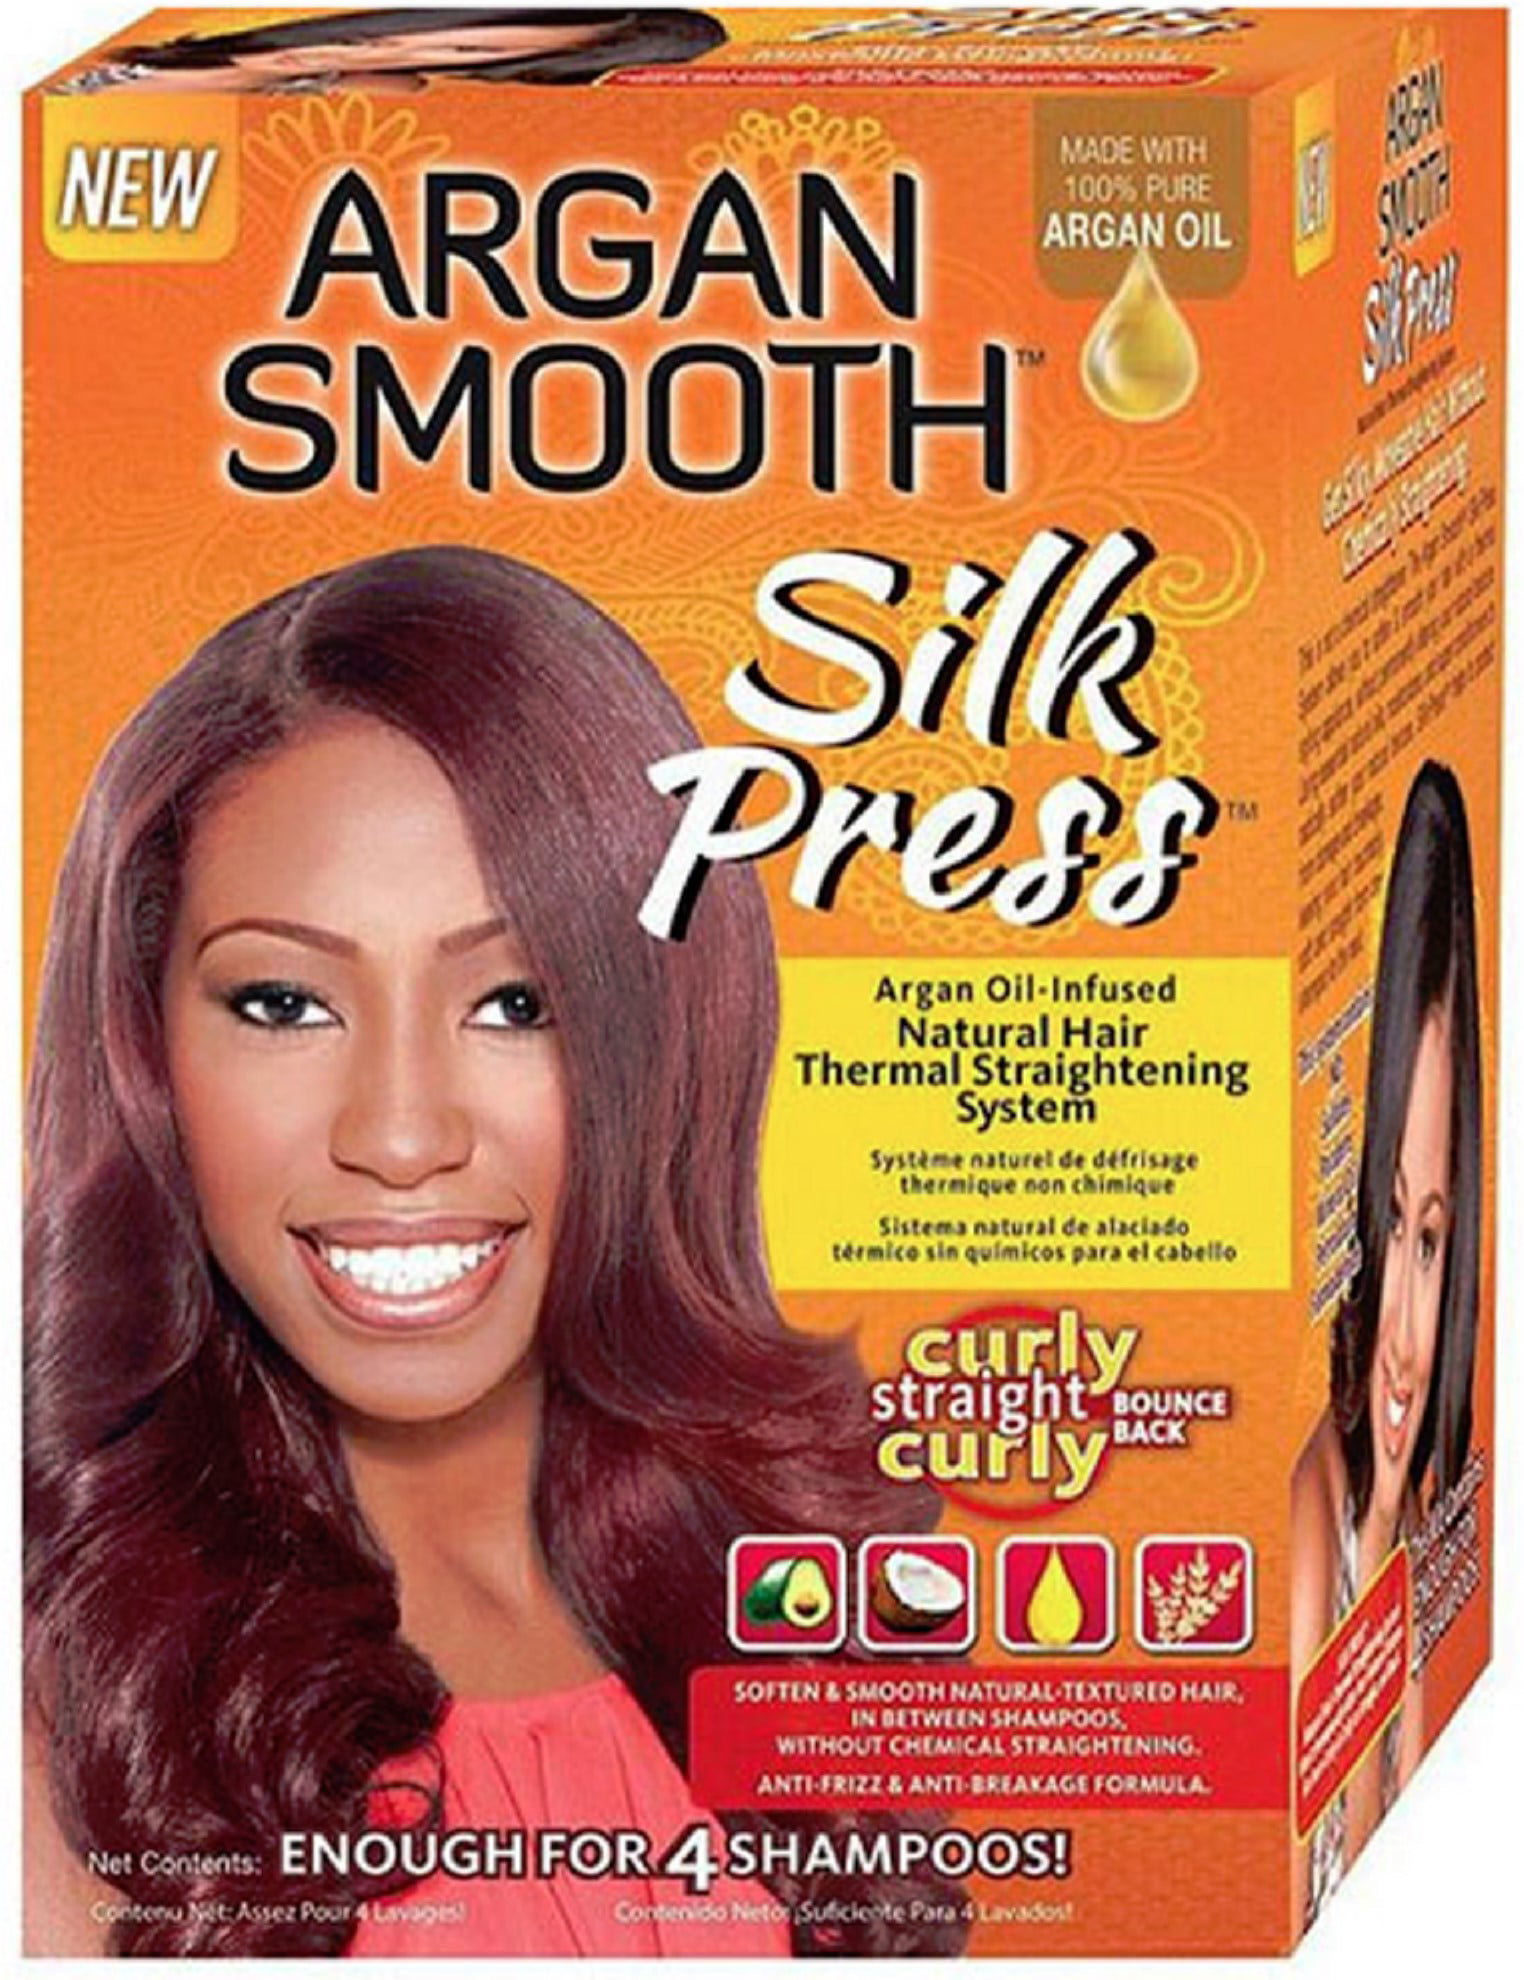 Africa S Best Argan Smooth Silk Press Natural Hair Thermal Straightening System 1 Ea